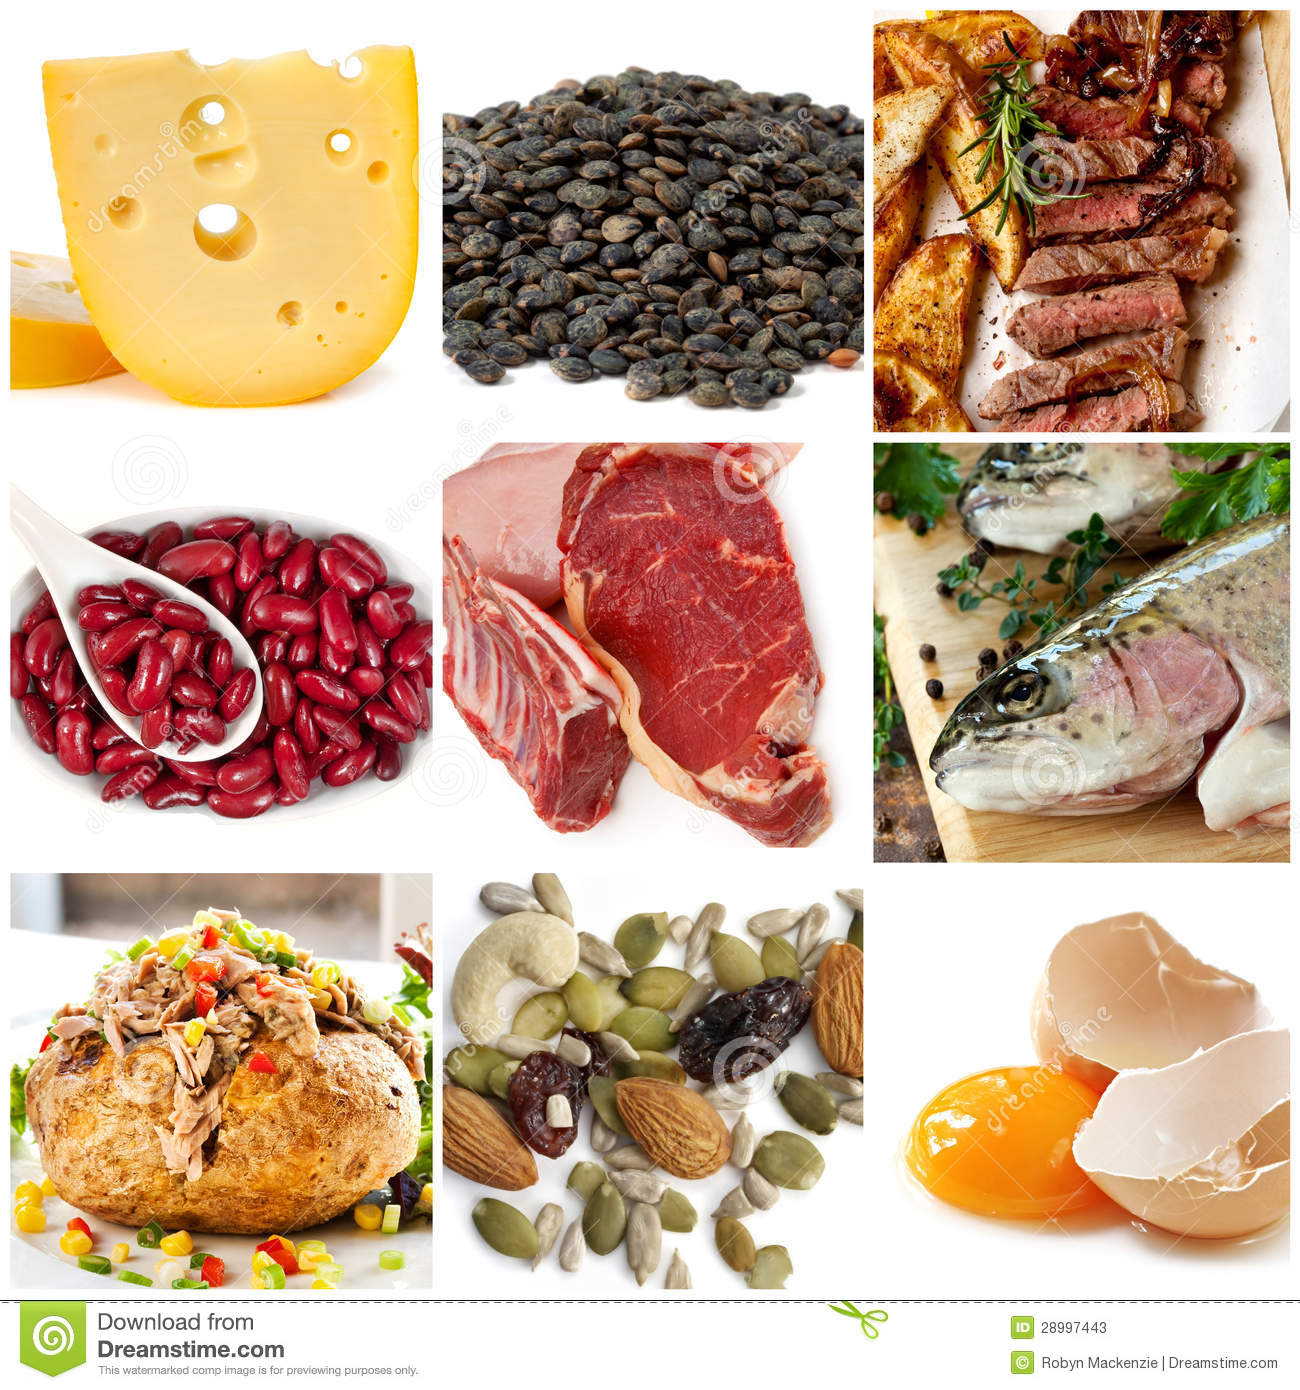 Food Sources Of Protein Including Cheese Lentils Red And White Meat